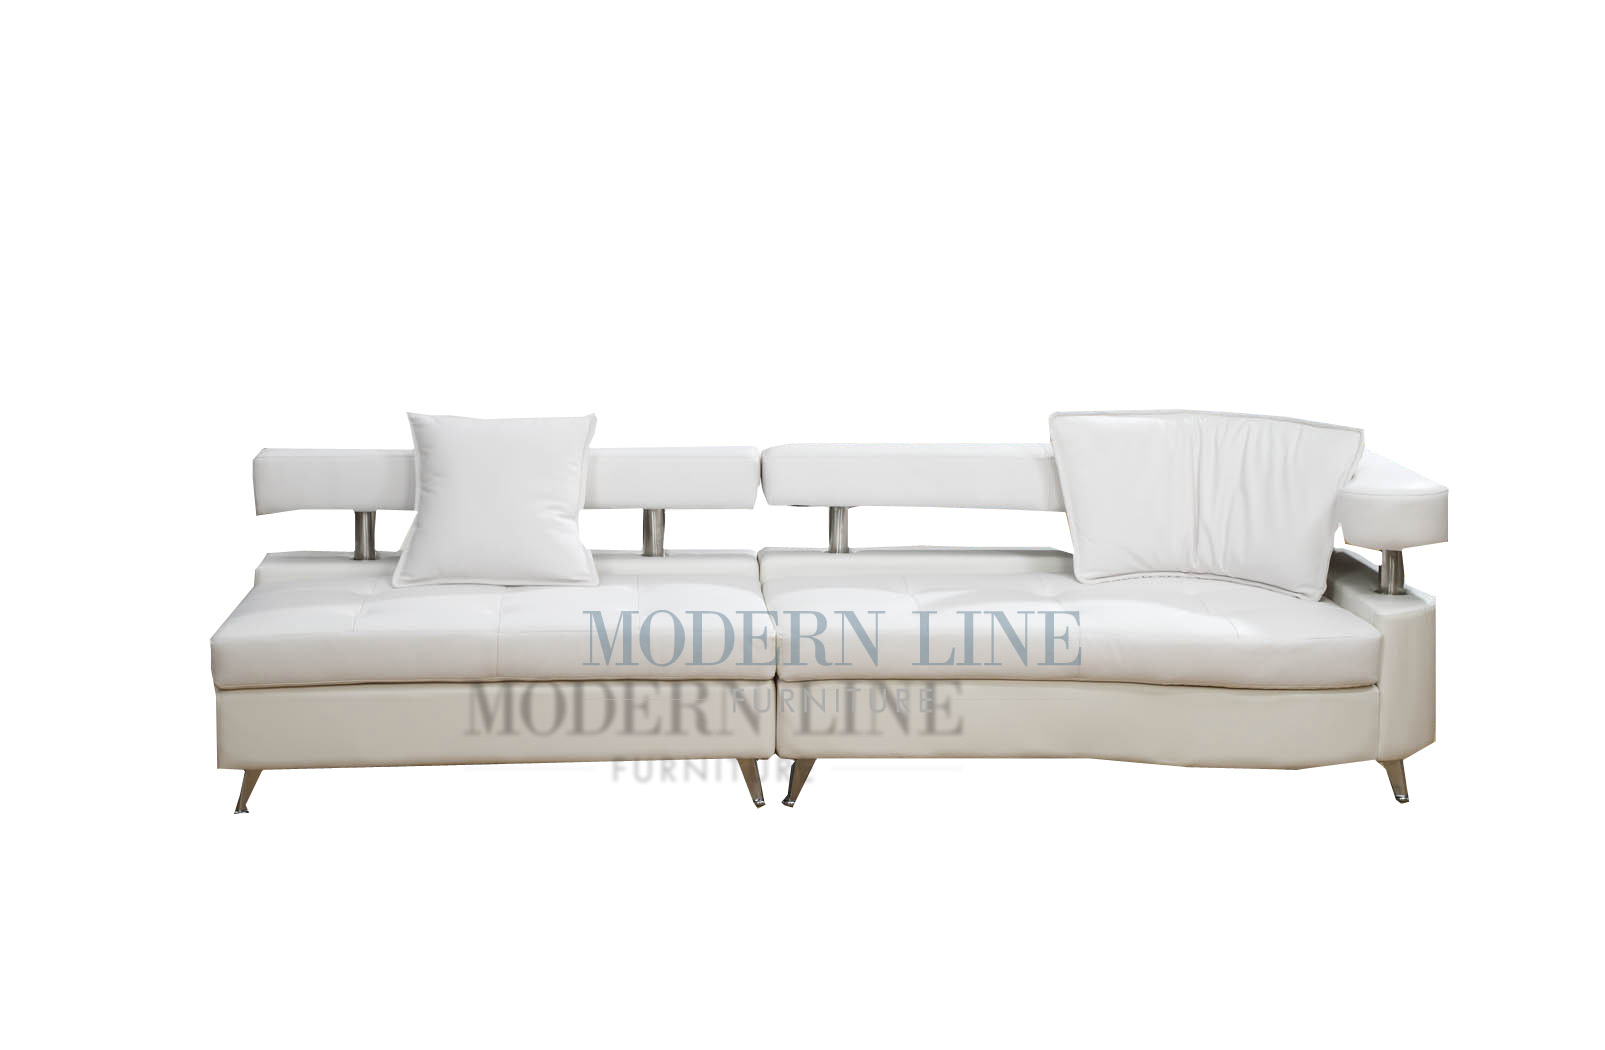 Modern Line Furniture Commercial Furniture Custom Made Furniture Clearance Visit Our